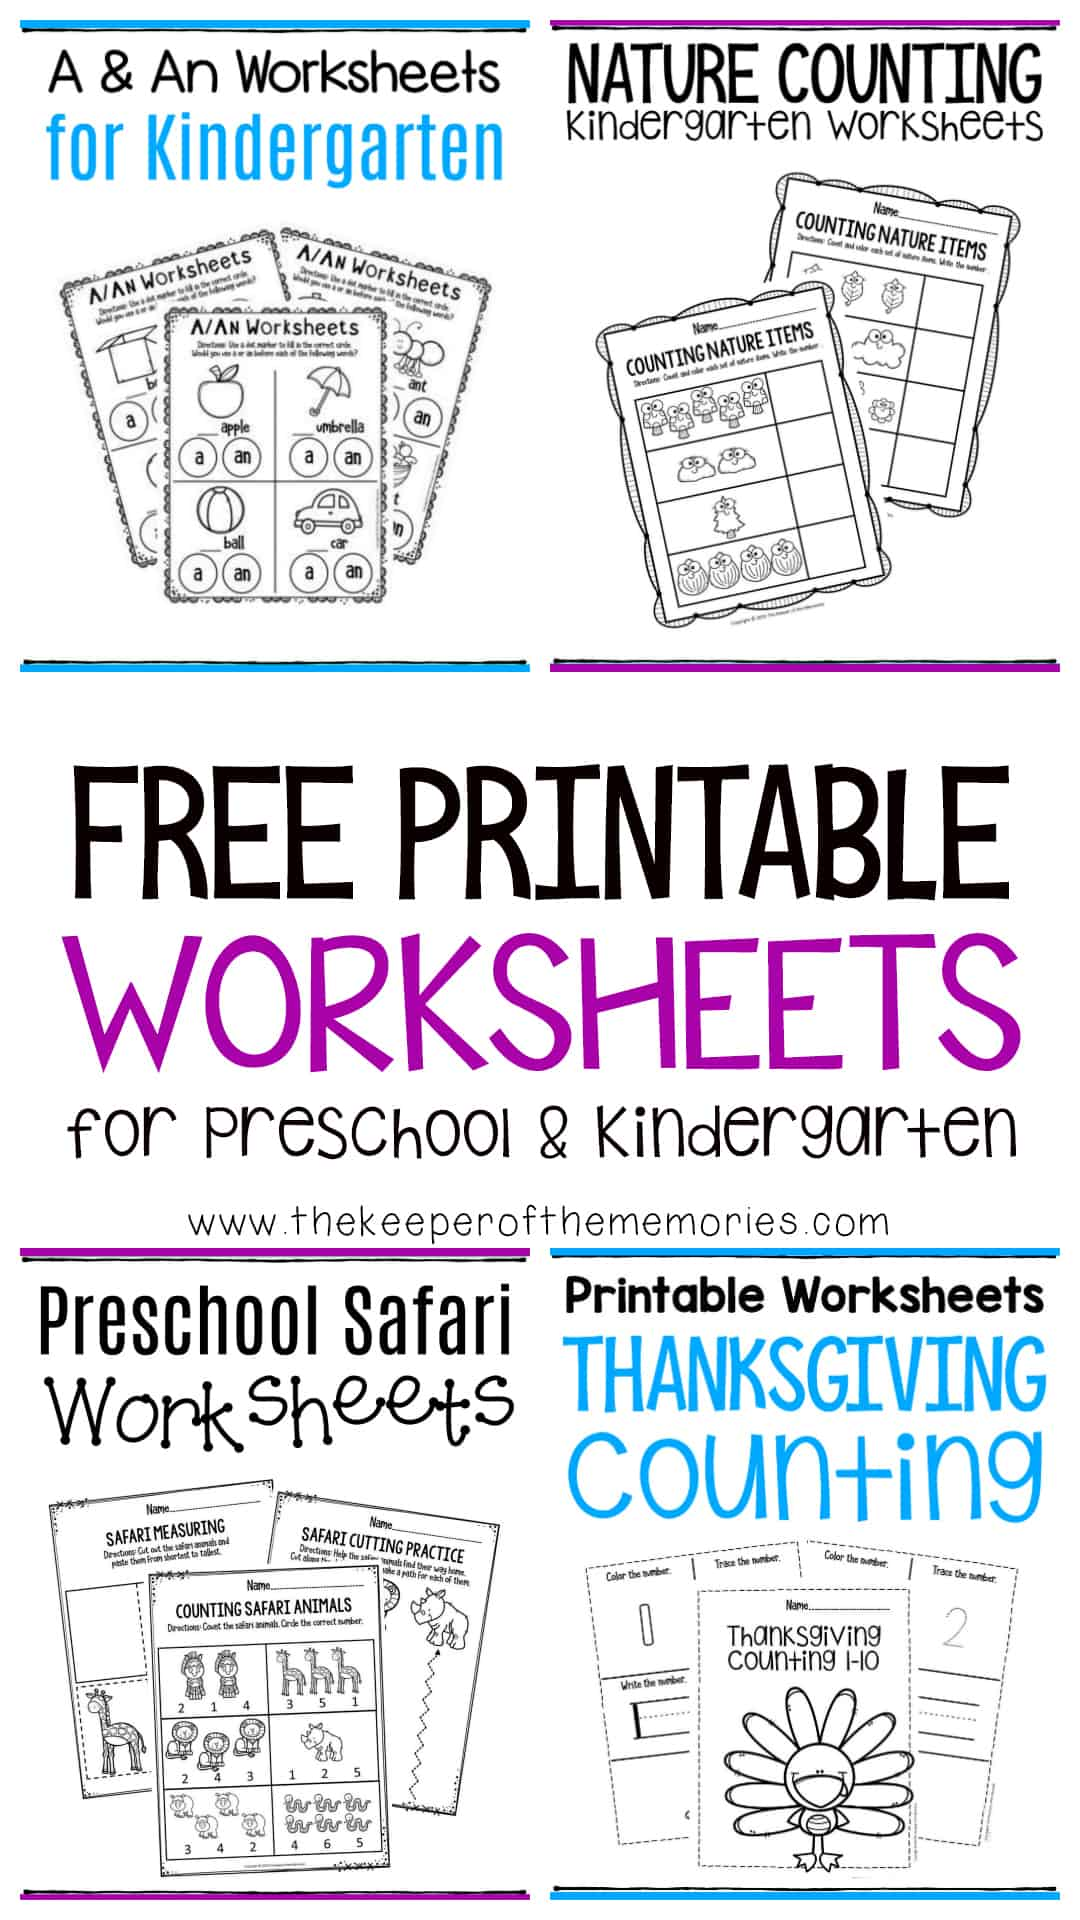 Free Printable Worksheets for Preschool & Kindergarten ...